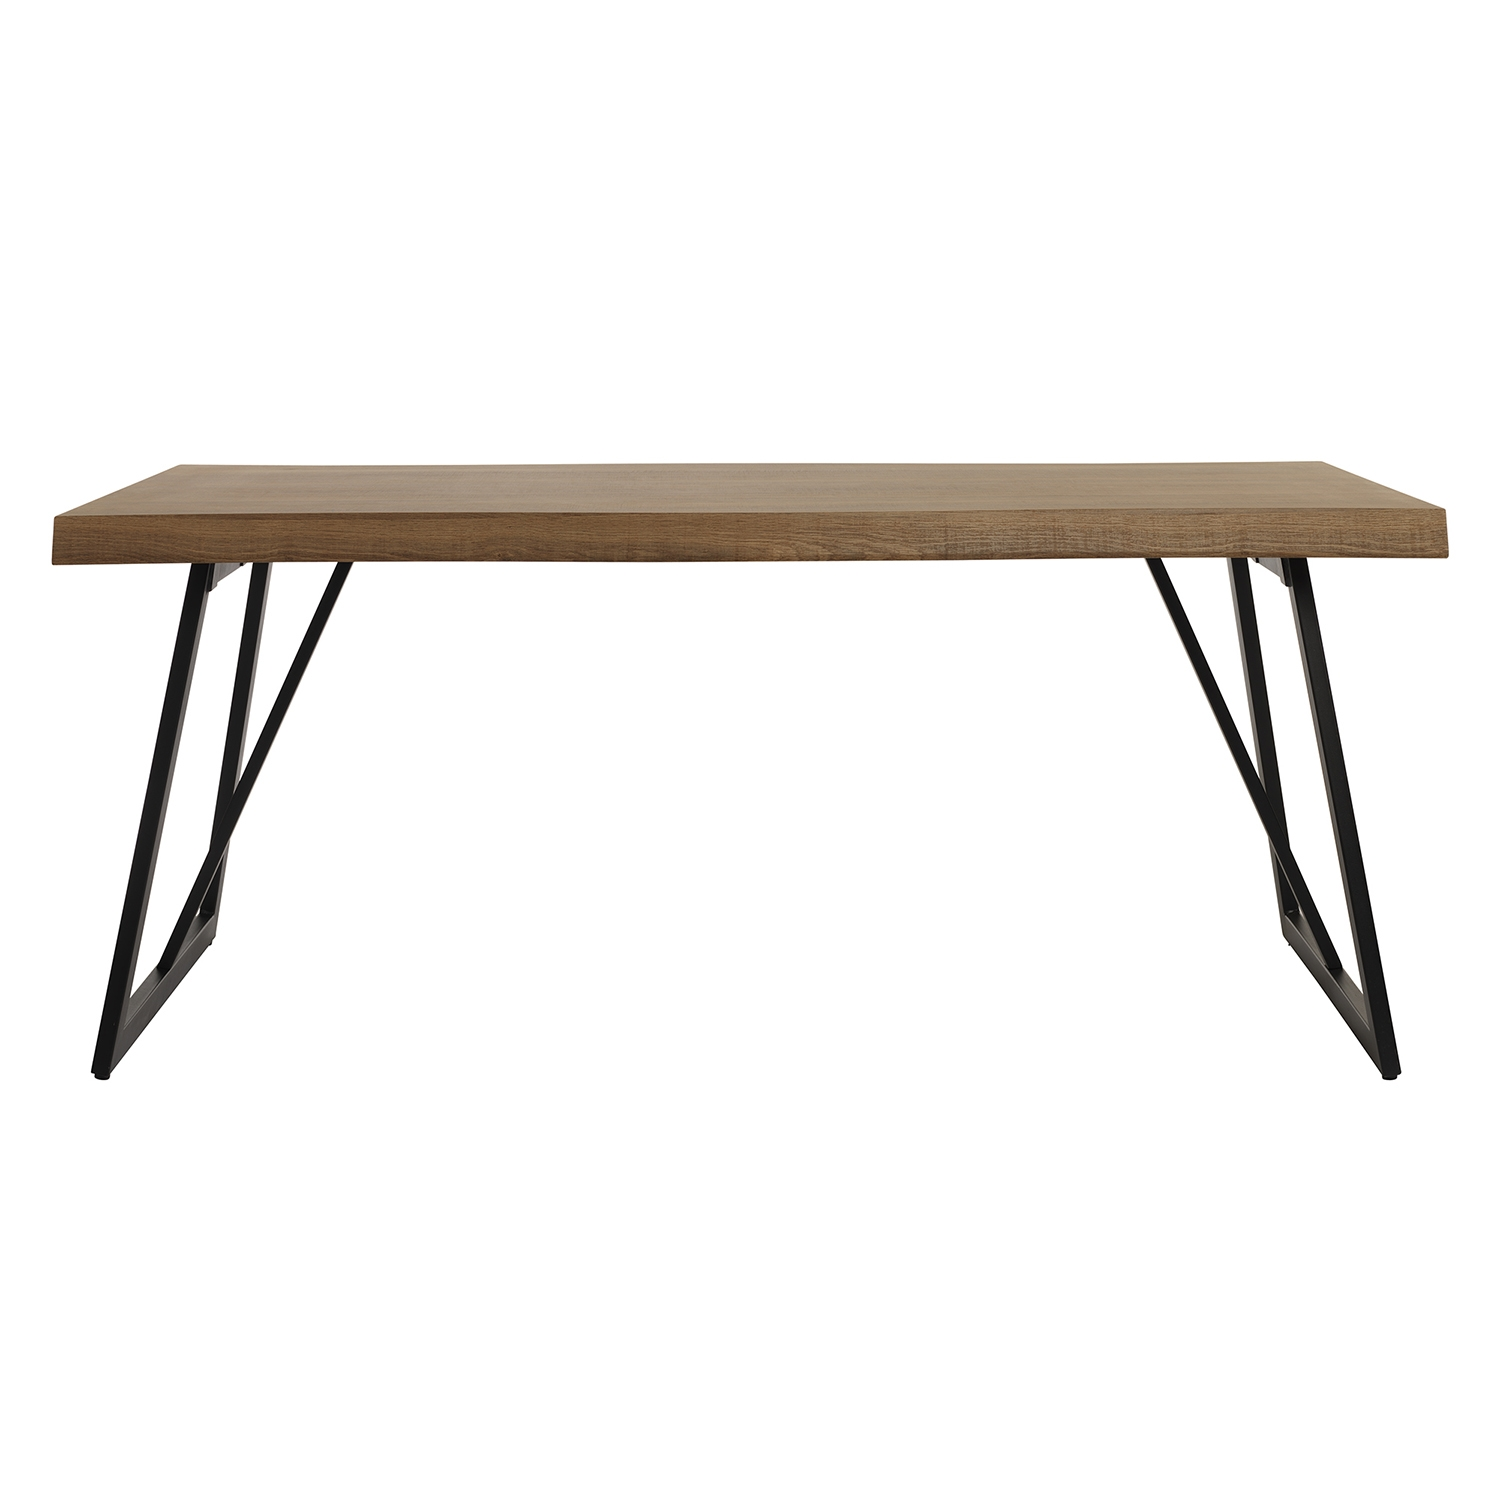 Image of Casa Melbourne Dining Table